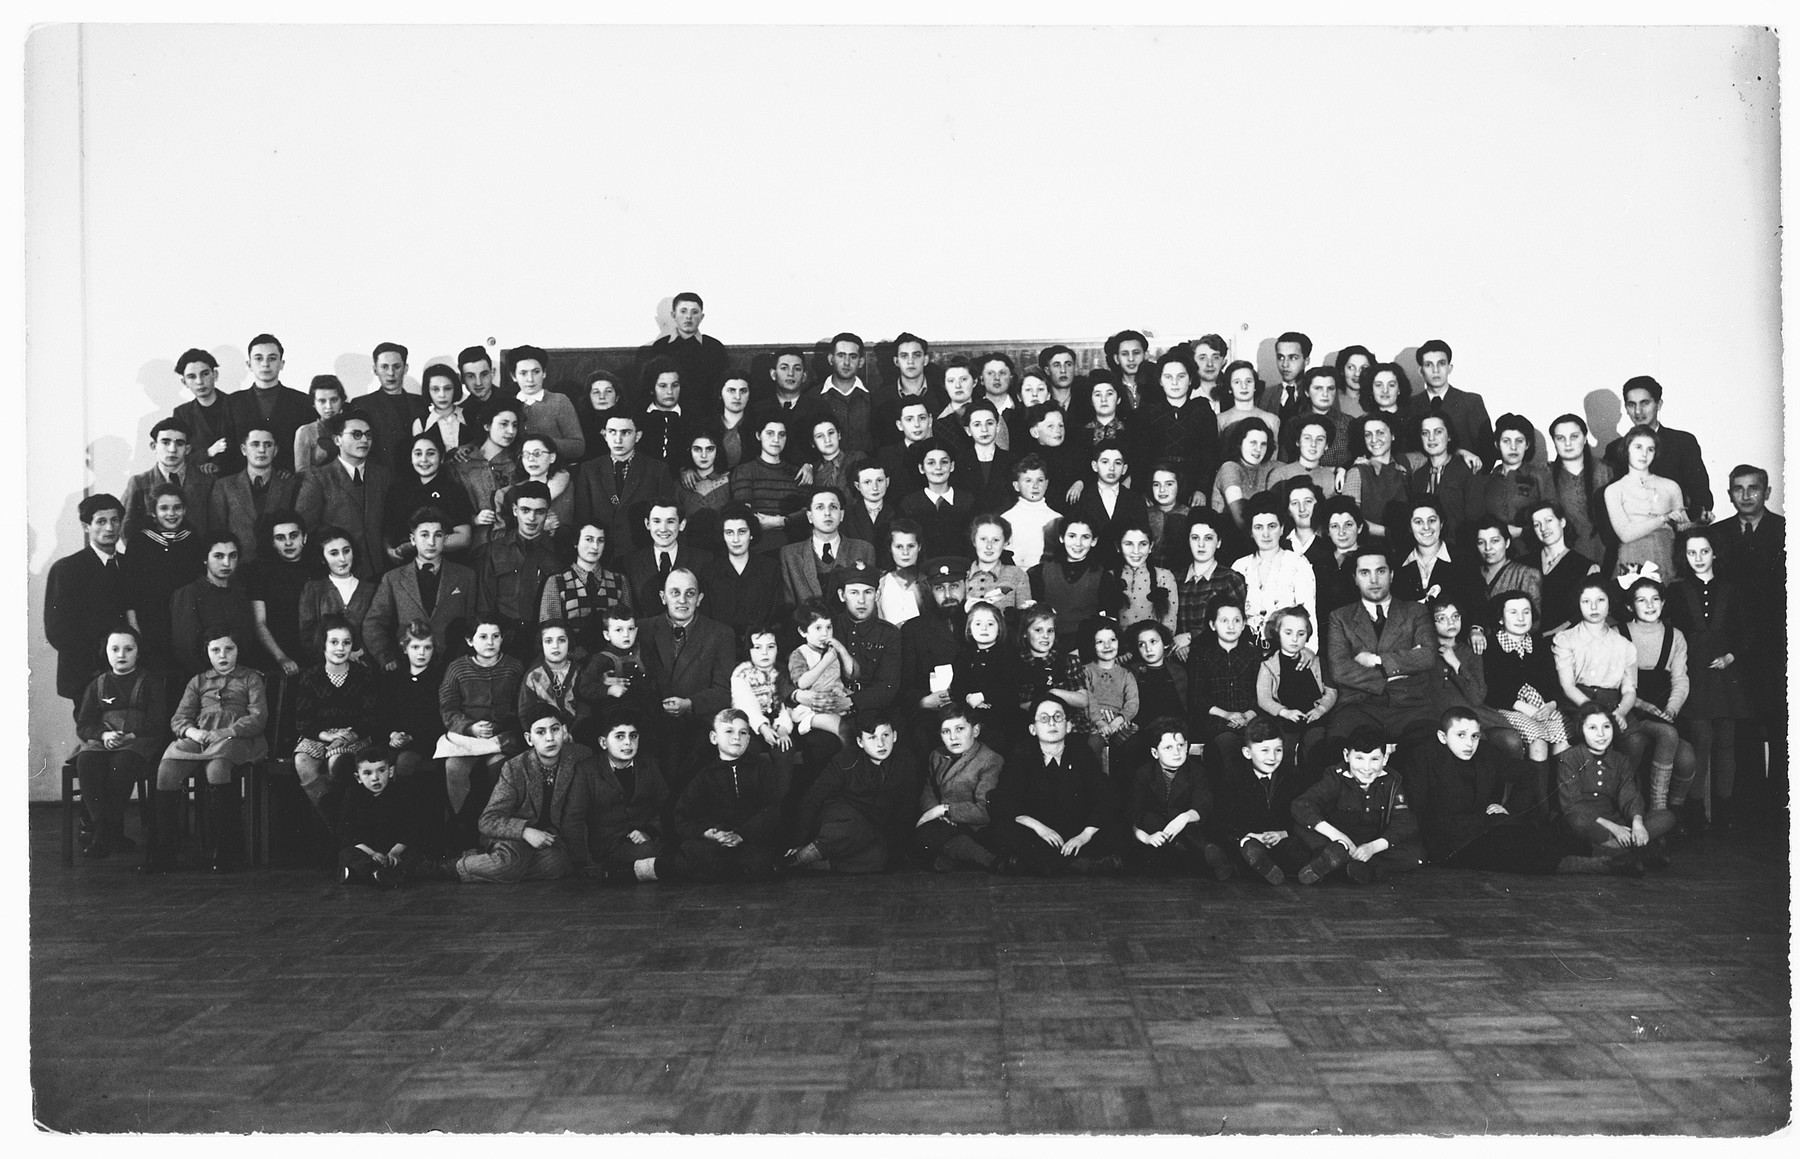 Group portrait of Jewish orphans whom Rabbi Solomon Schoenfeld gathered together to take to England from Poland.  Among those pictured is 14 year old Izio Degenszajn,  standing in the back row extreme left.  He is a survivor of the Warsaw Ghetto. Also pictured are Bianka Rozenman and her cousin Gabriel Zakrzewski.